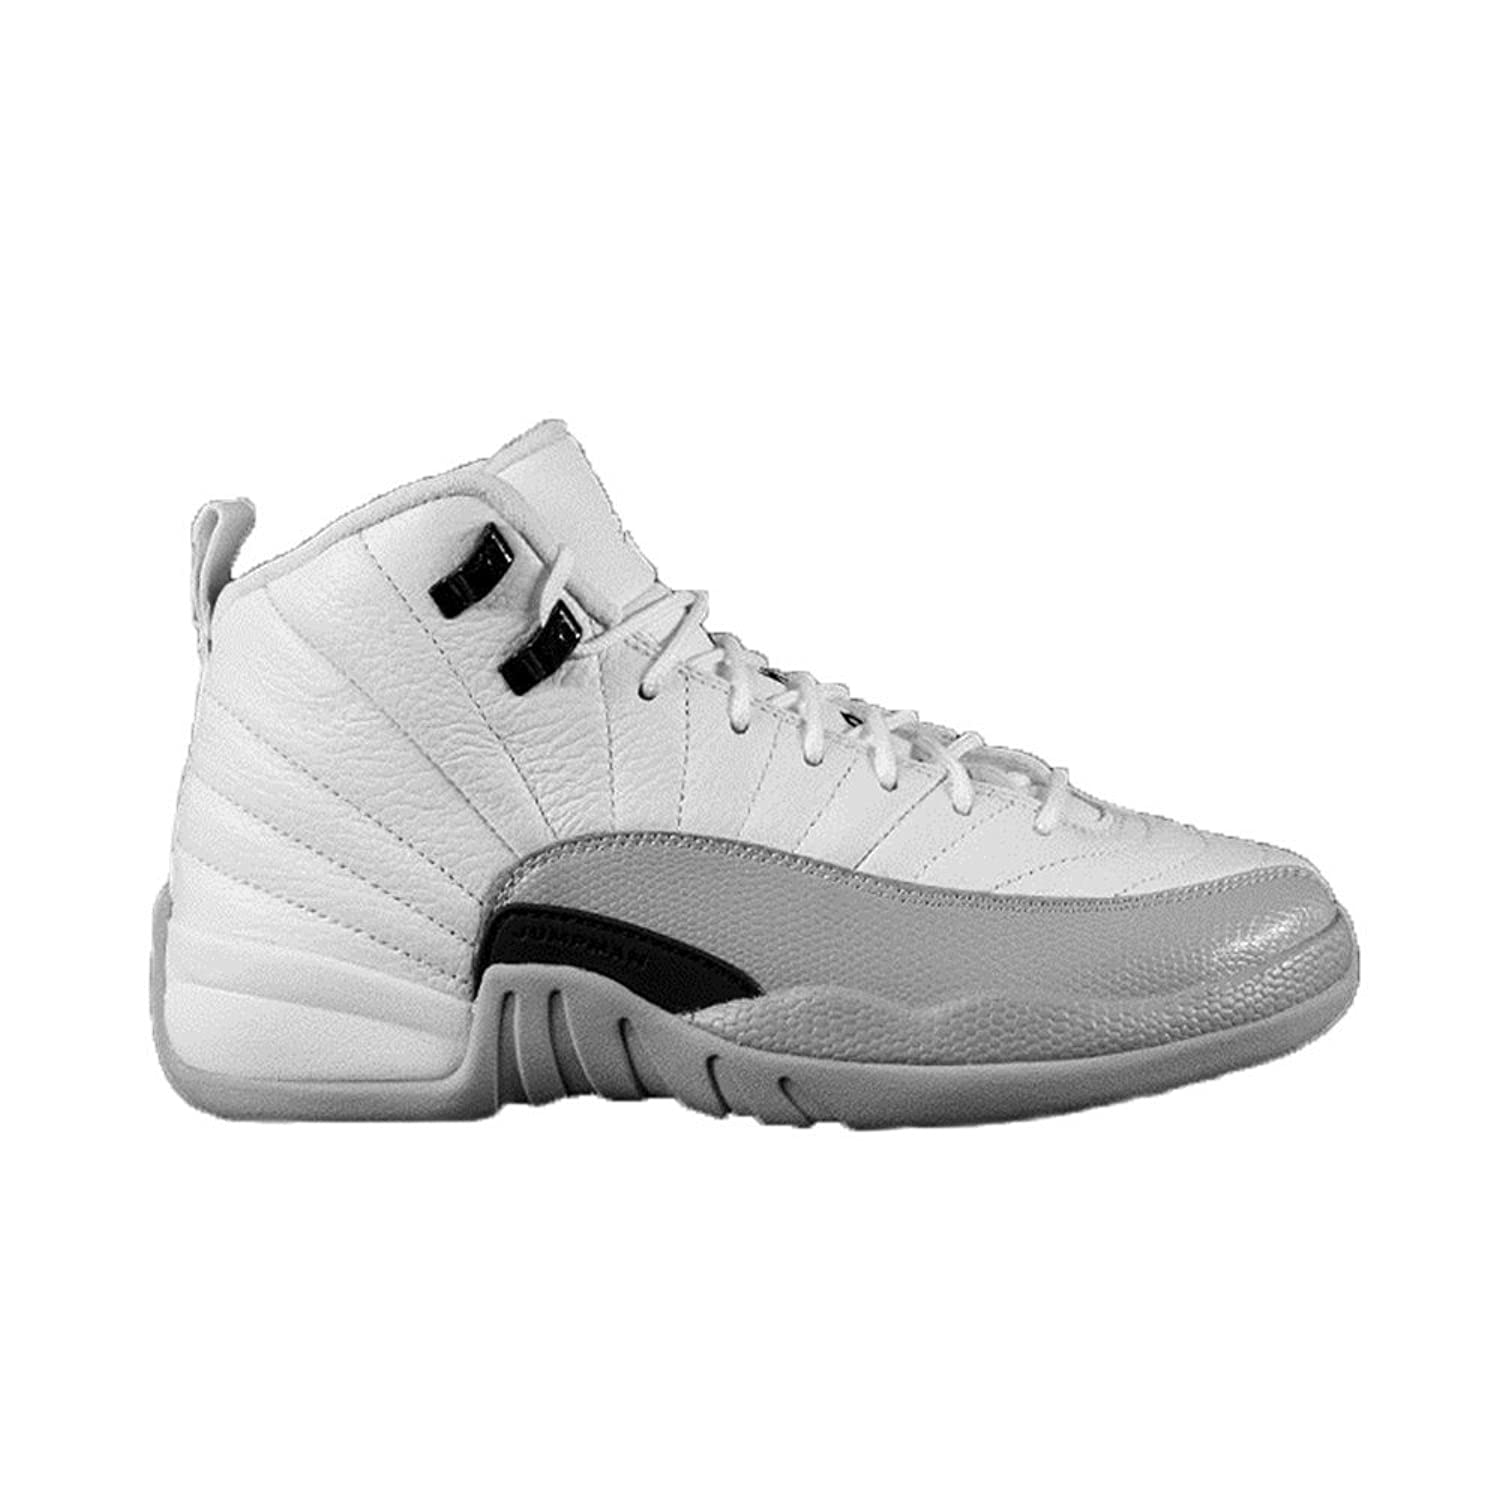 sneakers for cheap 7abf3 d3f37 ... sweden amazon nike air jordan 12 retro gg basketball sneaker white gray  5 jordan shoes 0a9f3